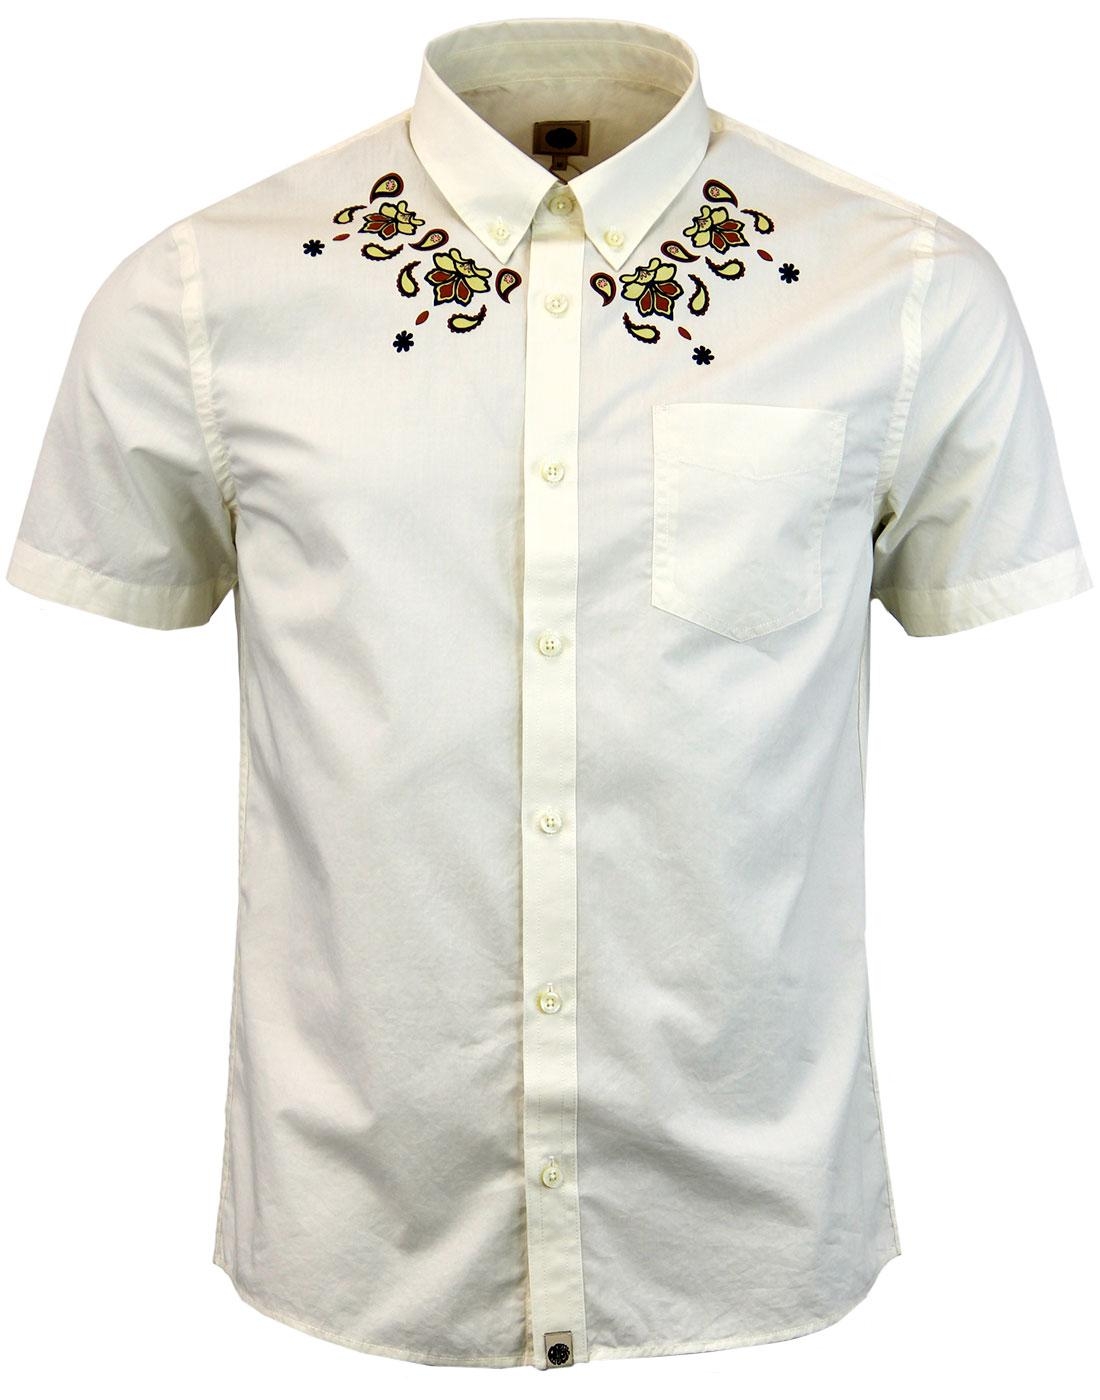 Ordsall PRETTY GREEN Retro Mod Paisley 60s Shirt